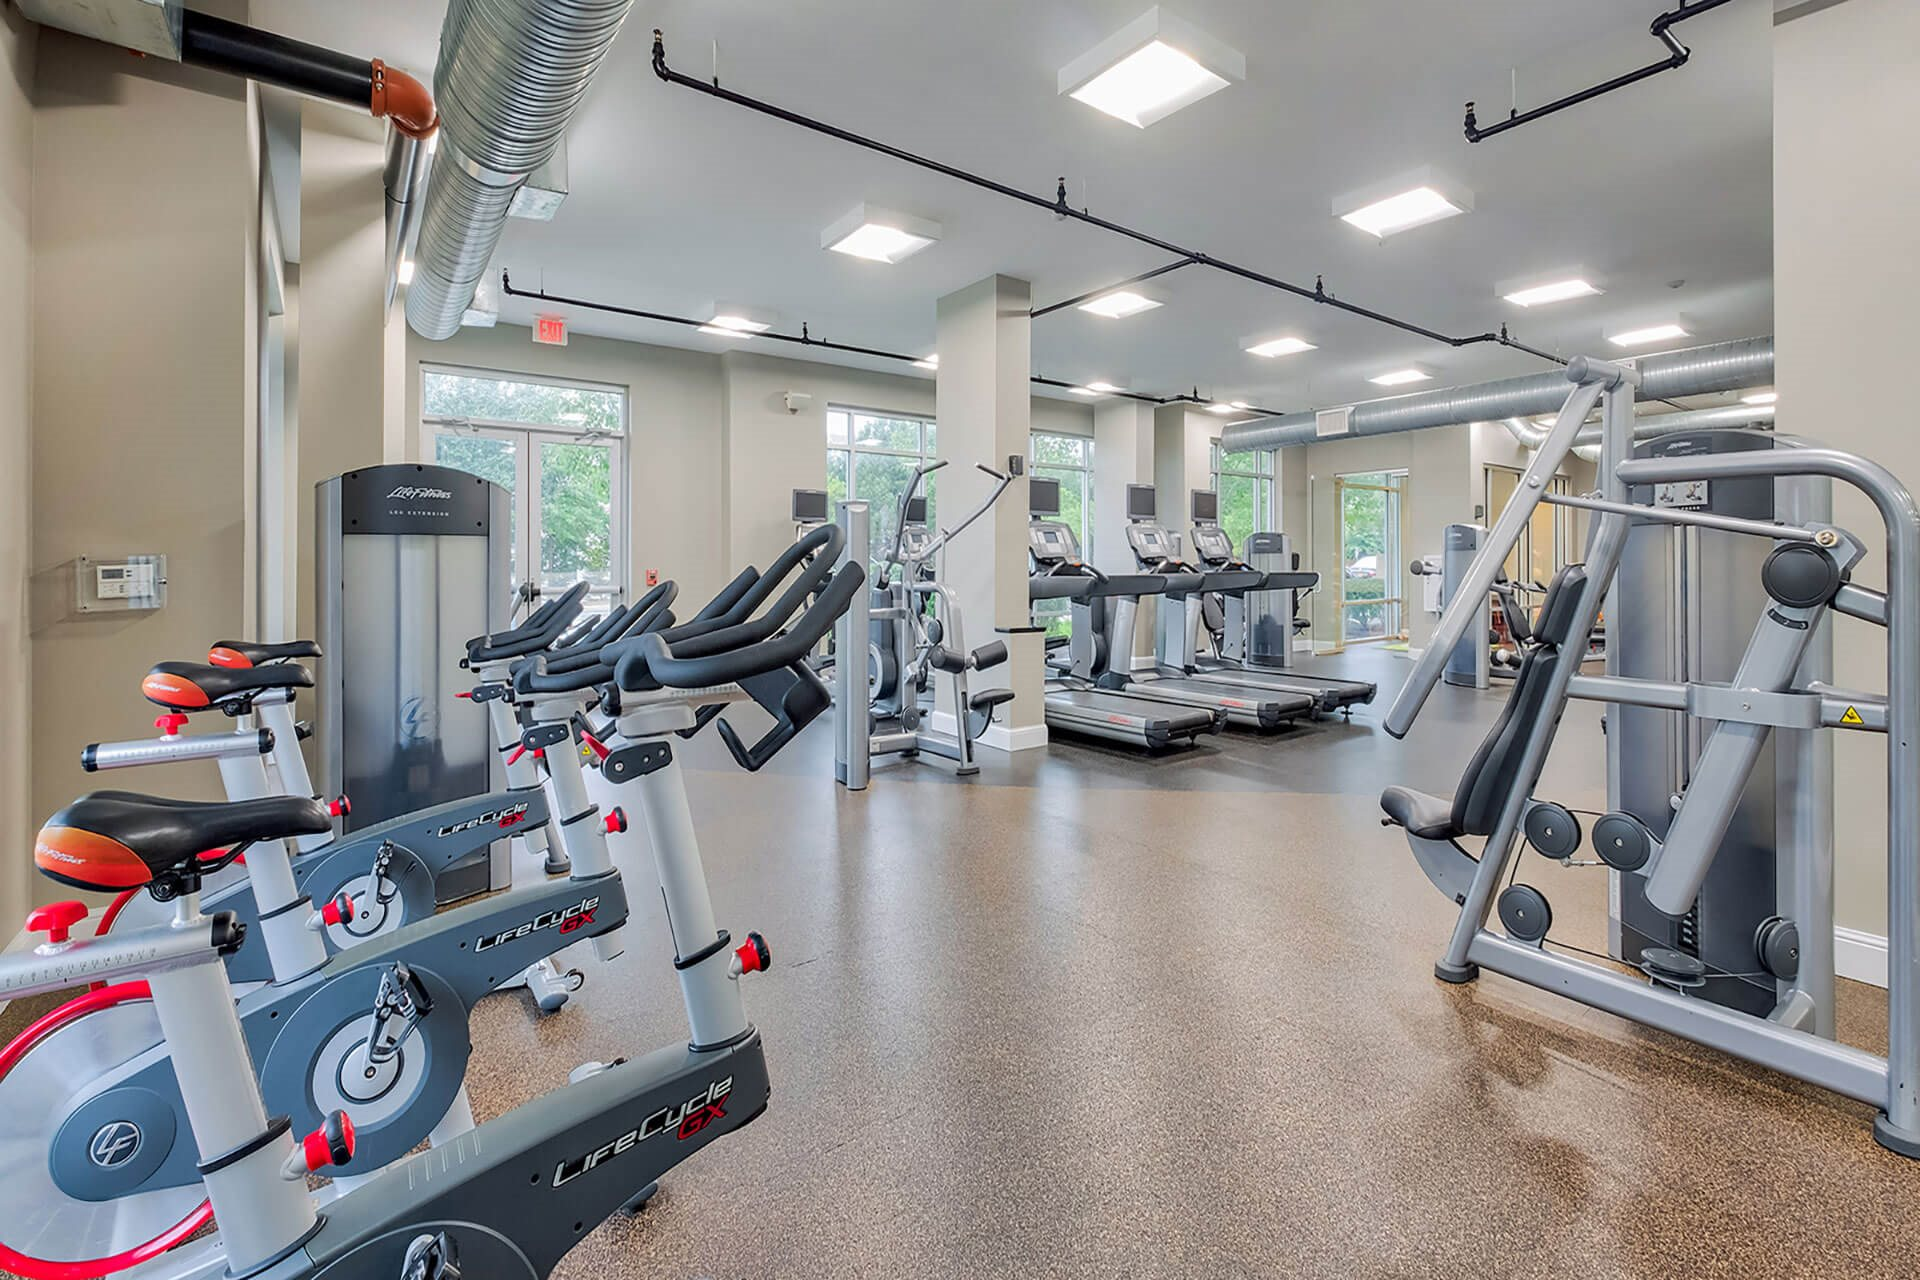 Fully-equipped fitness center at The Ridgewood by Windsor, 4211 Ridge Top Road, Fairfax